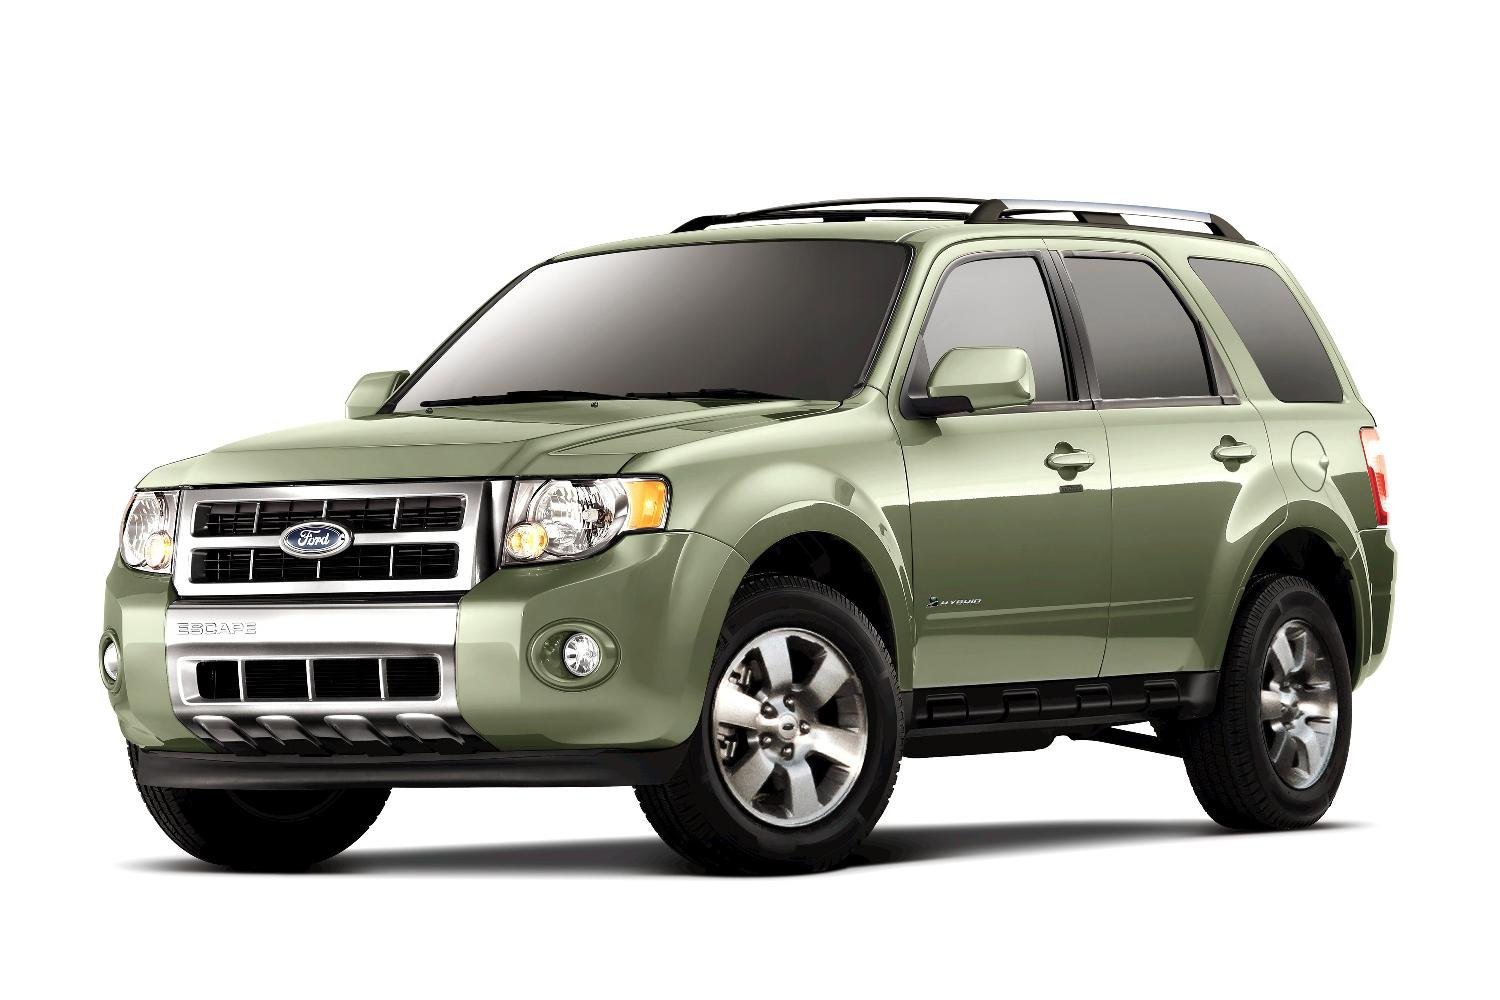 2011 Ford Explorer Accessories 2010 Ford Escape Hybrid Review, Ratings, Specs, Prices ...